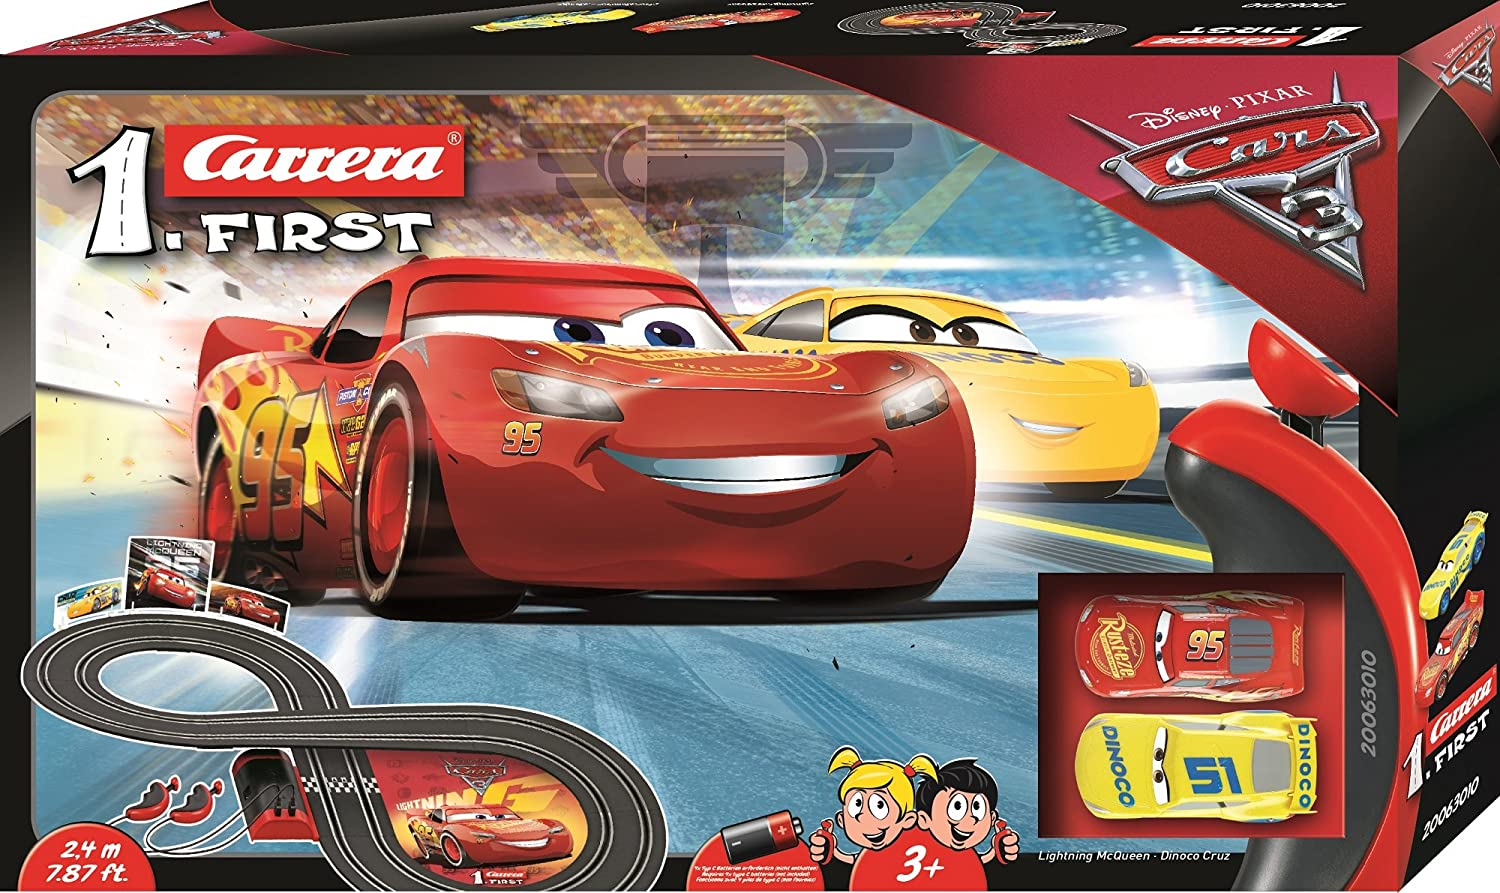 Amazon.com: Carrera First Disney/Pixar Cars 3 - Slot Car Race Track -  Includes 2 cars: Lightning McQueen and Dinoco Cruz - Battery-Powered  Beginner Racing ...